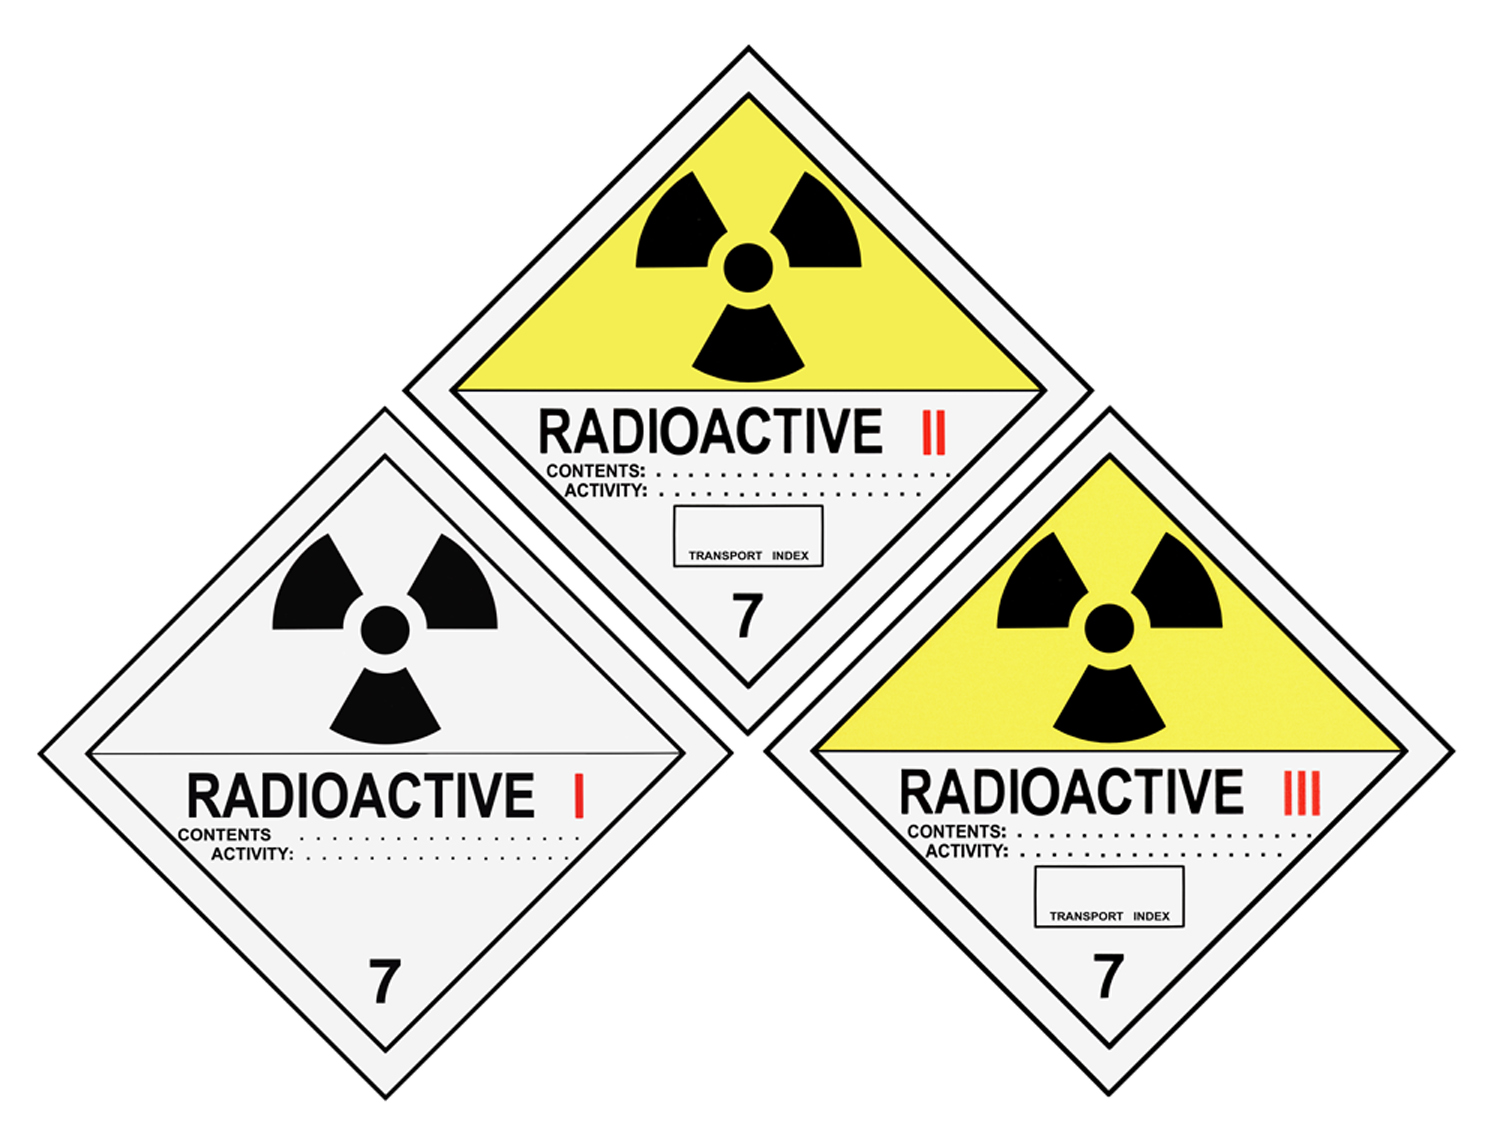 Signs of packages used for radioactive materials